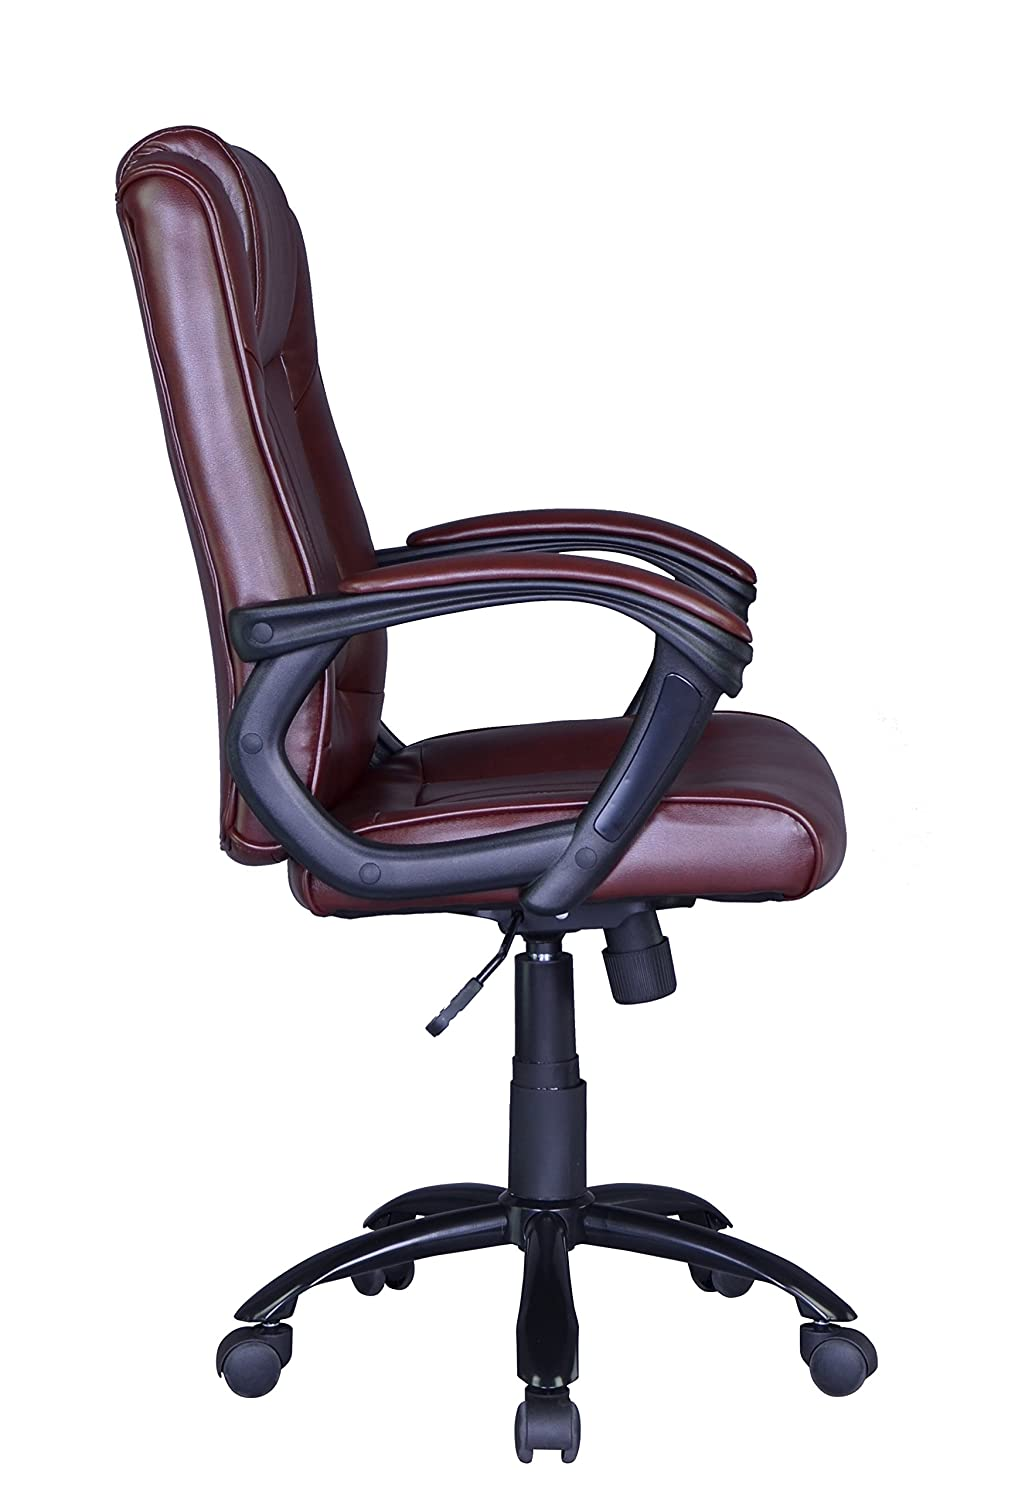 Most comfortable computer chair - Most Comfortable Office Chair Most Comfortable Desk Chair